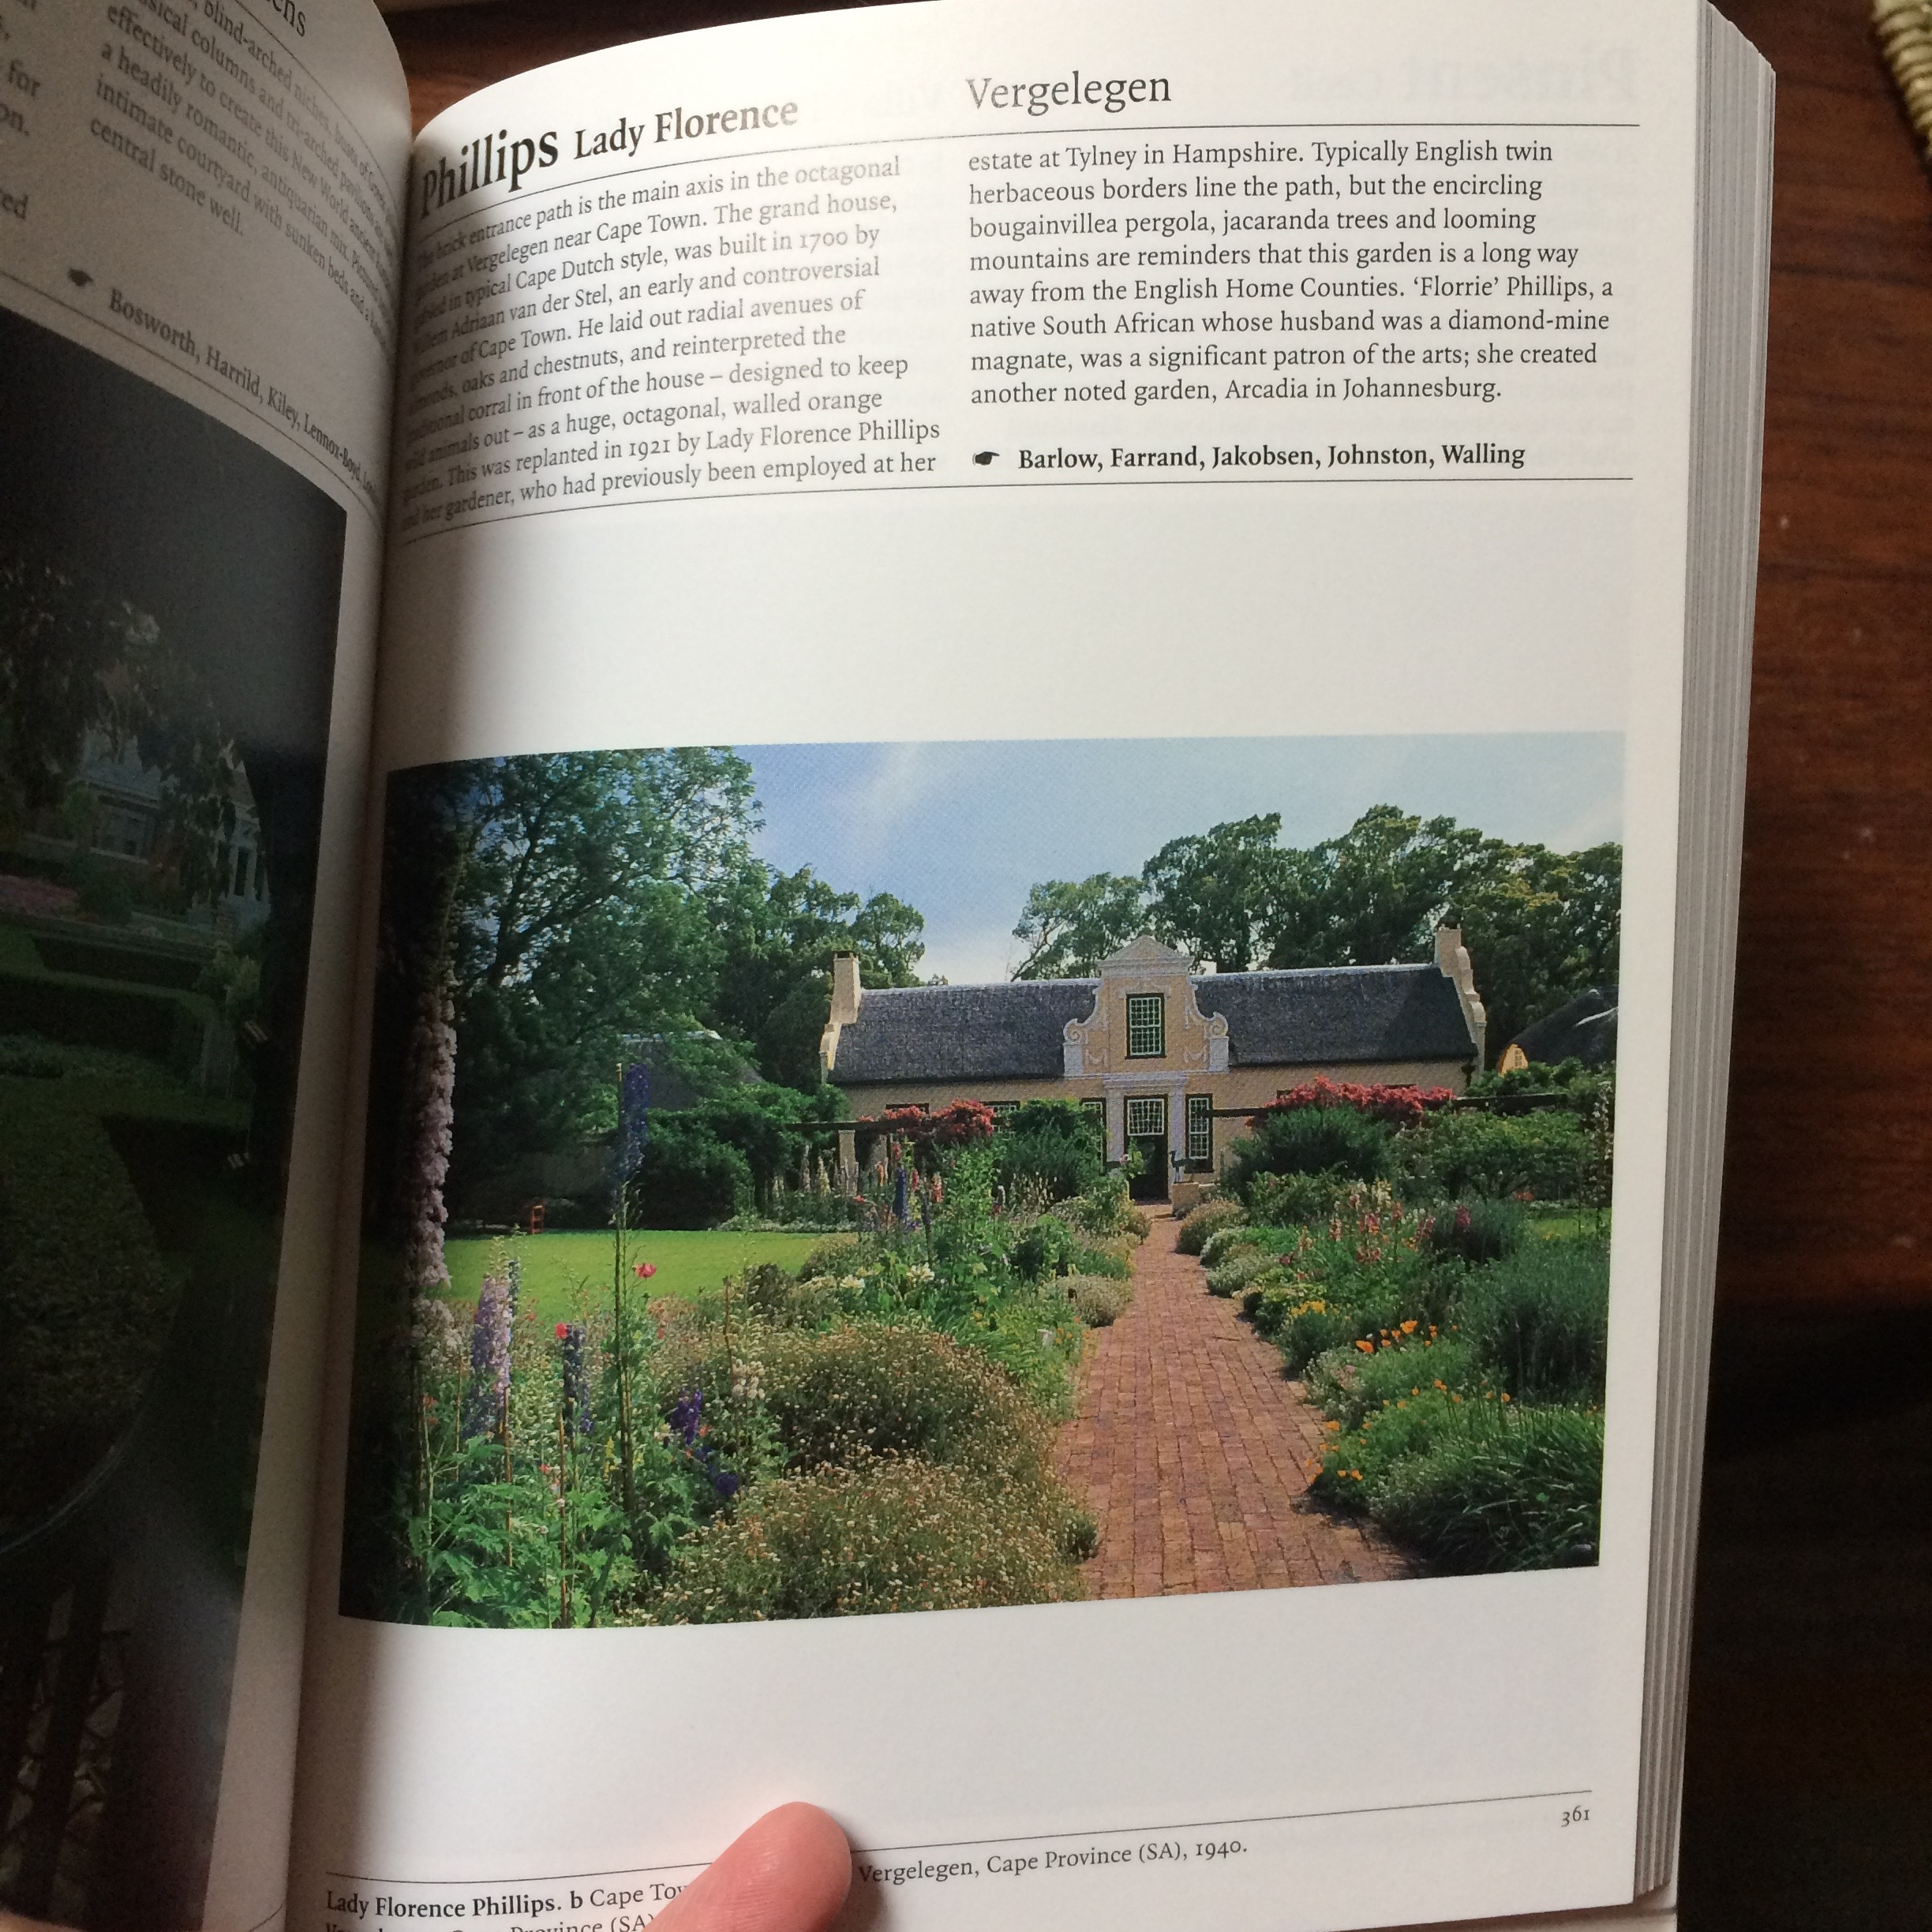 What are gardens?